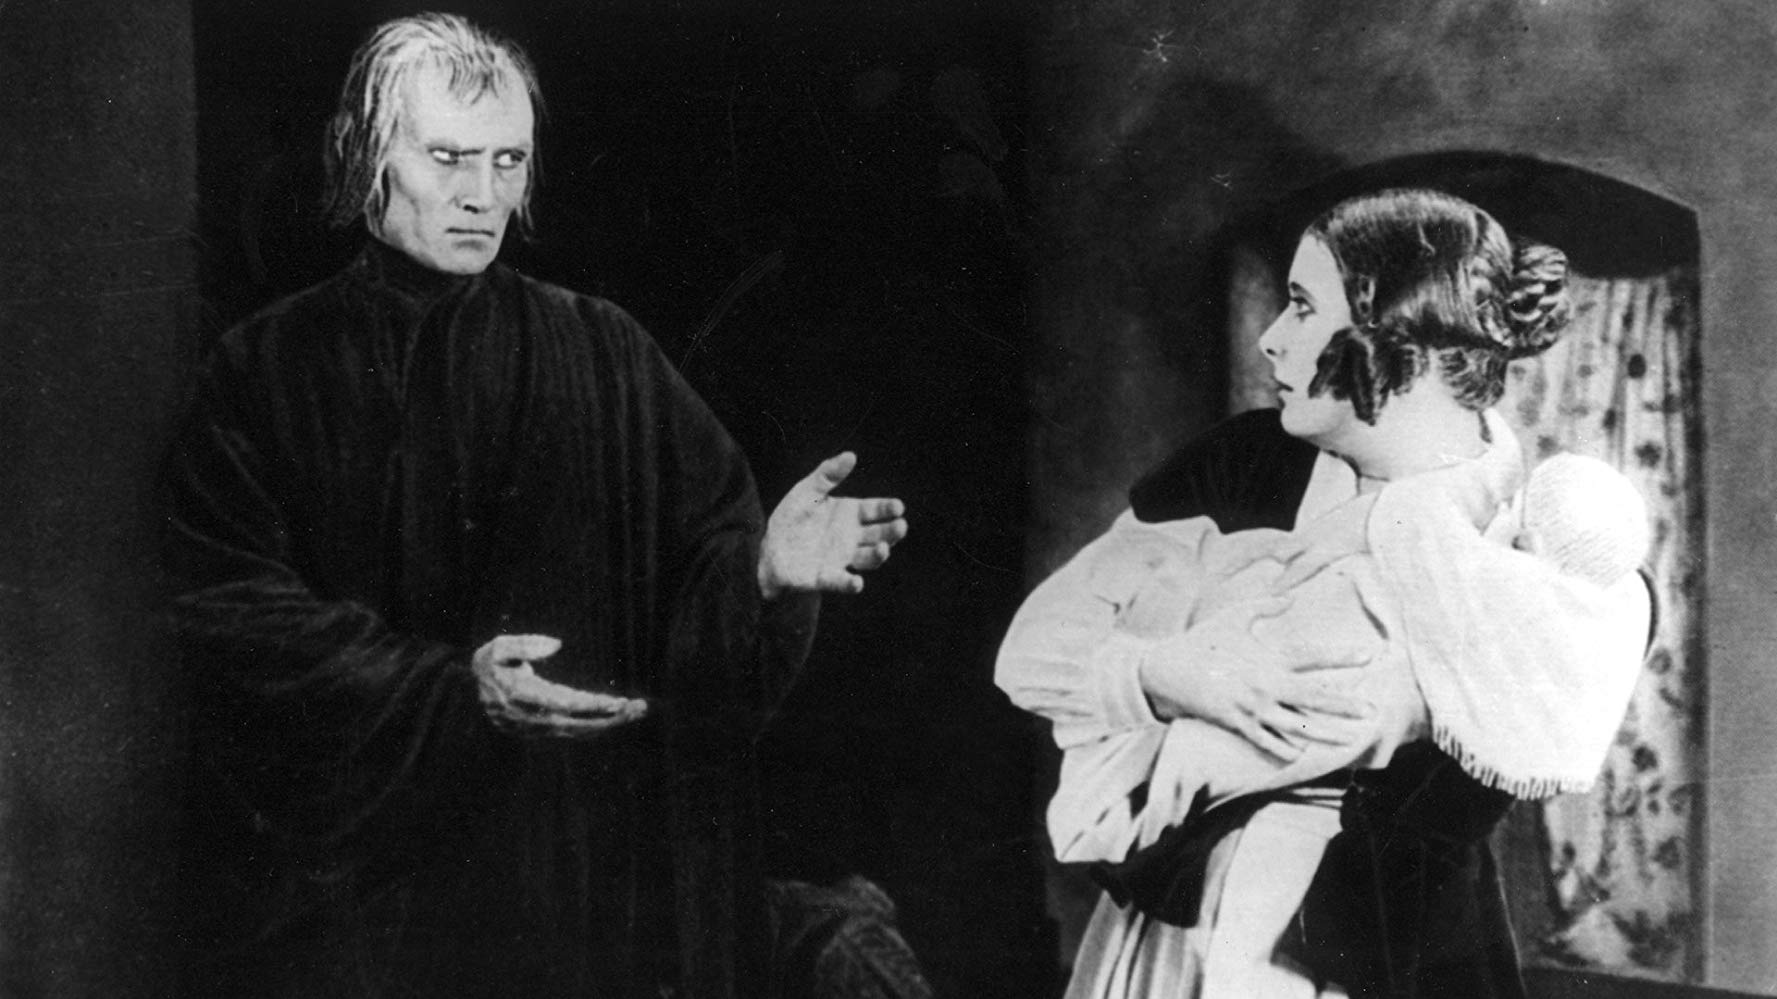 Death (Bernhard Goetzke) appears to Lil Dagover in Destiny (1921)